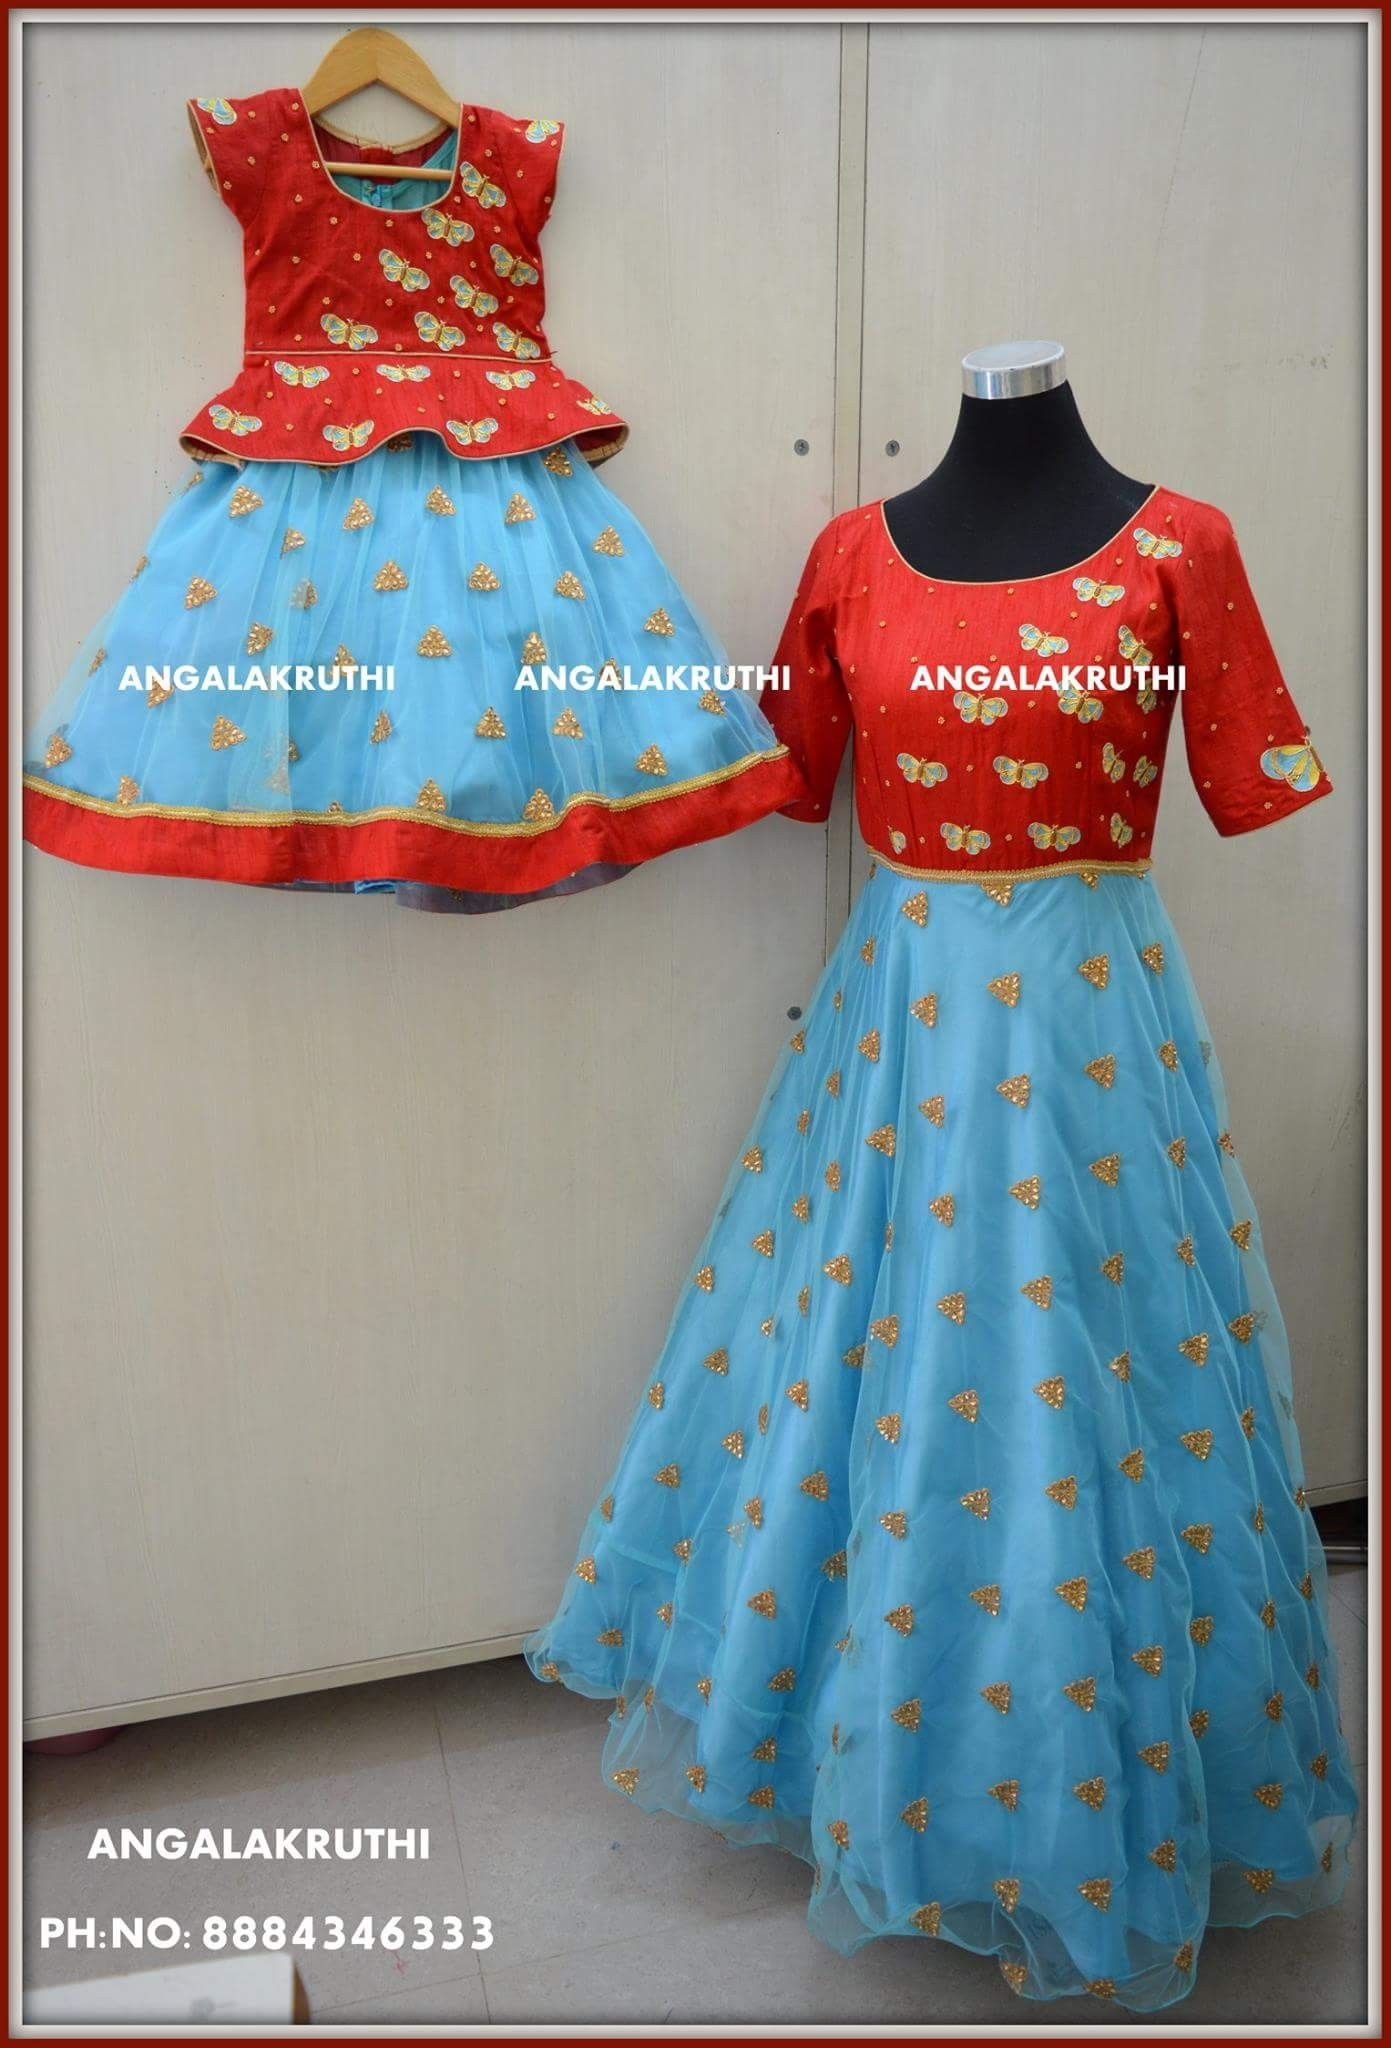 e765a0ea44 #Matching dress designs by Angalakruthi boutique Bangalore #Mom and Me dress  designs #Mother and daughter matching dress designs by Angalakrthi boutique  ...